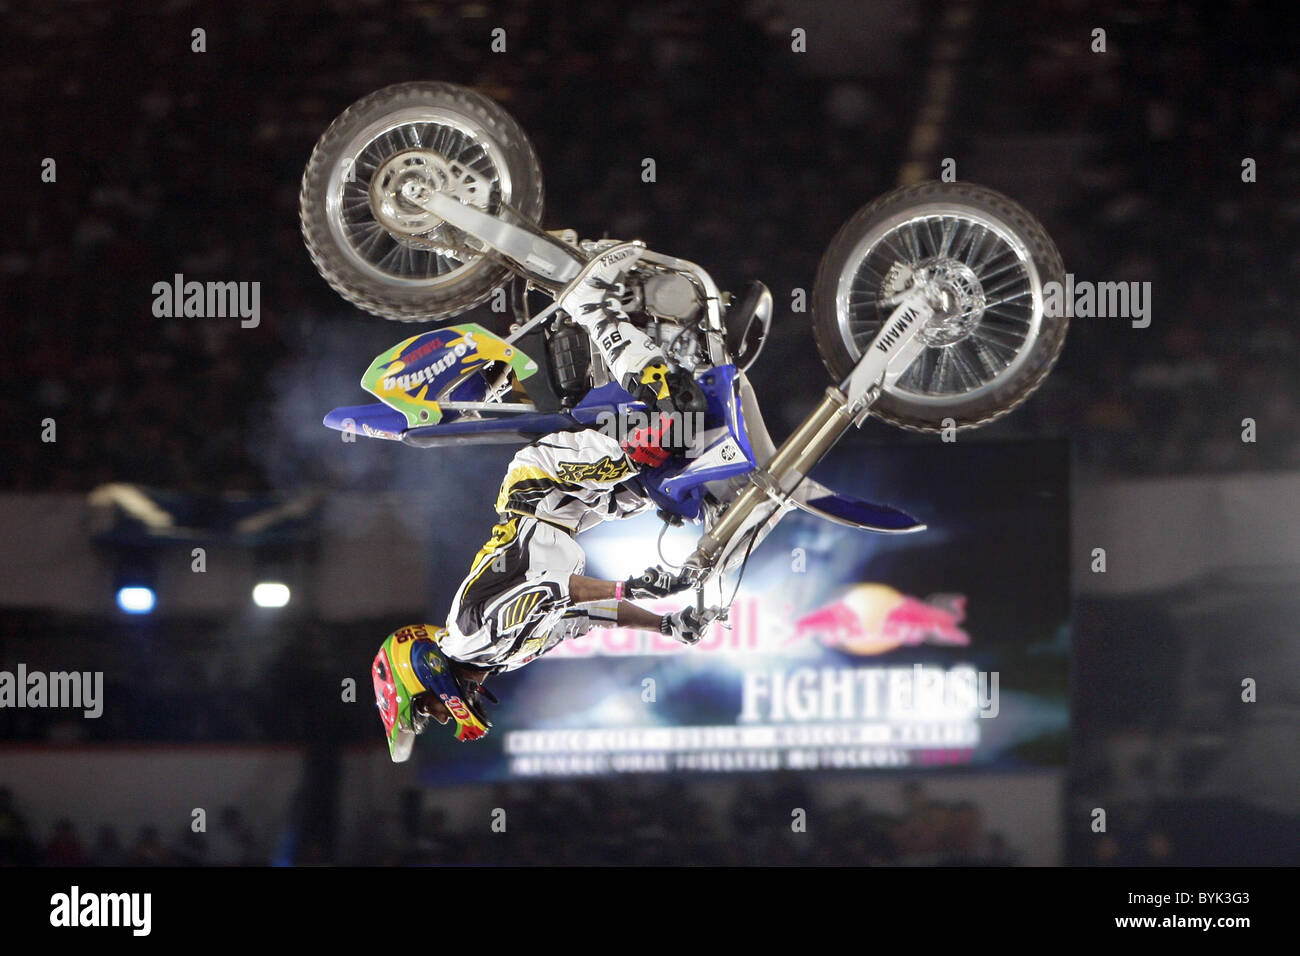 Red Bull X-Fighters These were the scenes in Mexico recently when some of the worlds most renowned and respected - Stock Image